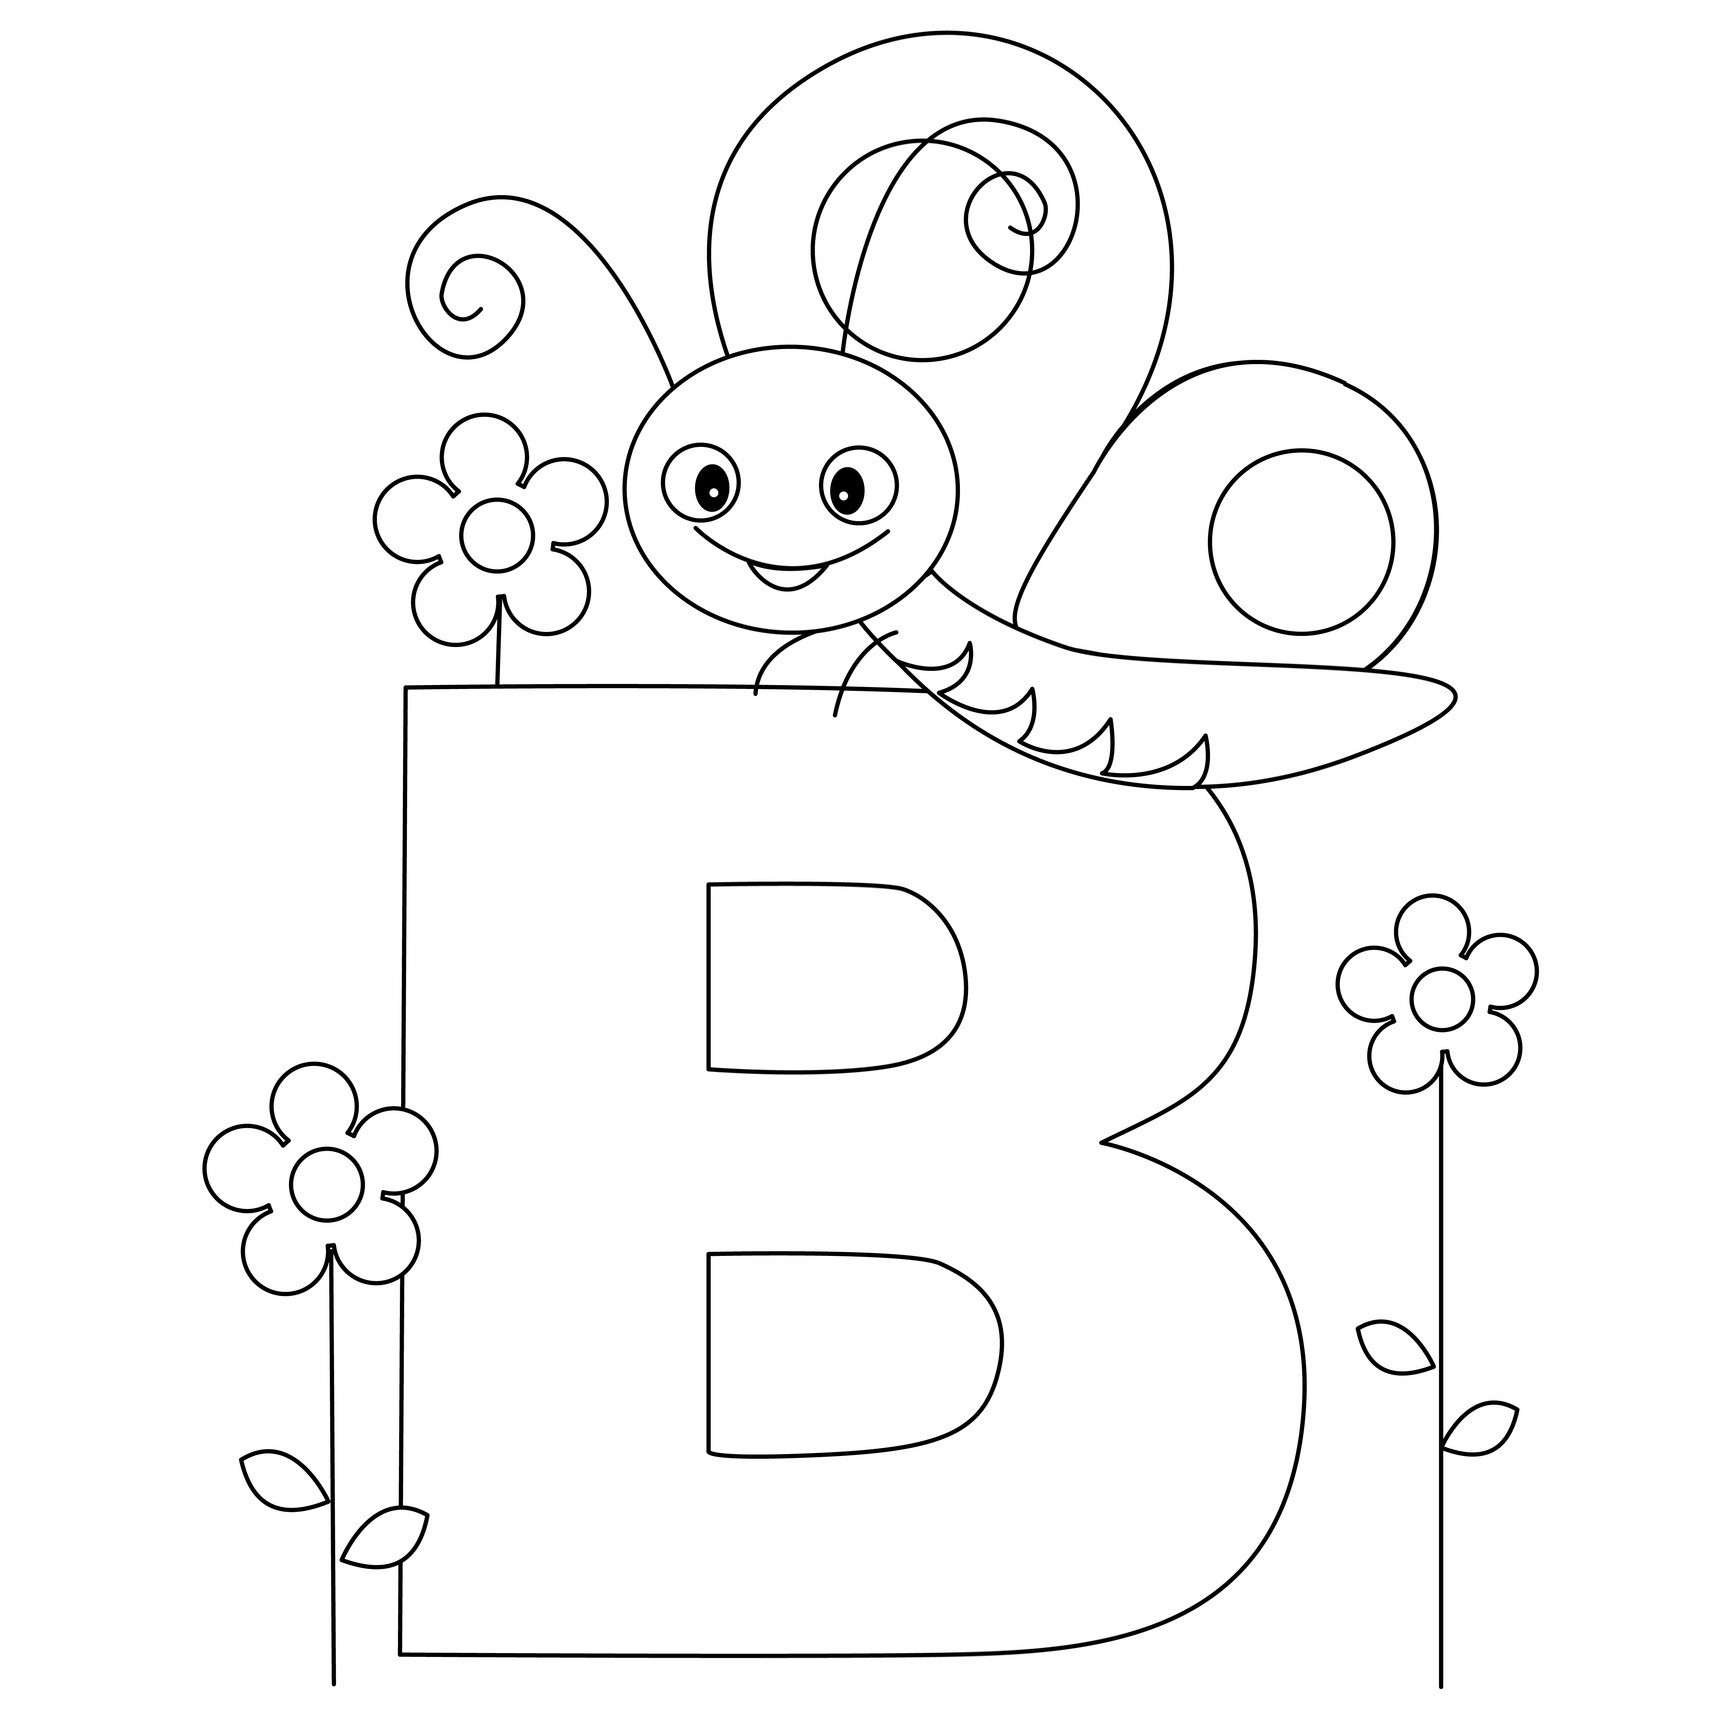 coloring pages alphabet free letter a alphabet coloring pages 3 free printable coloring pages alphabet free